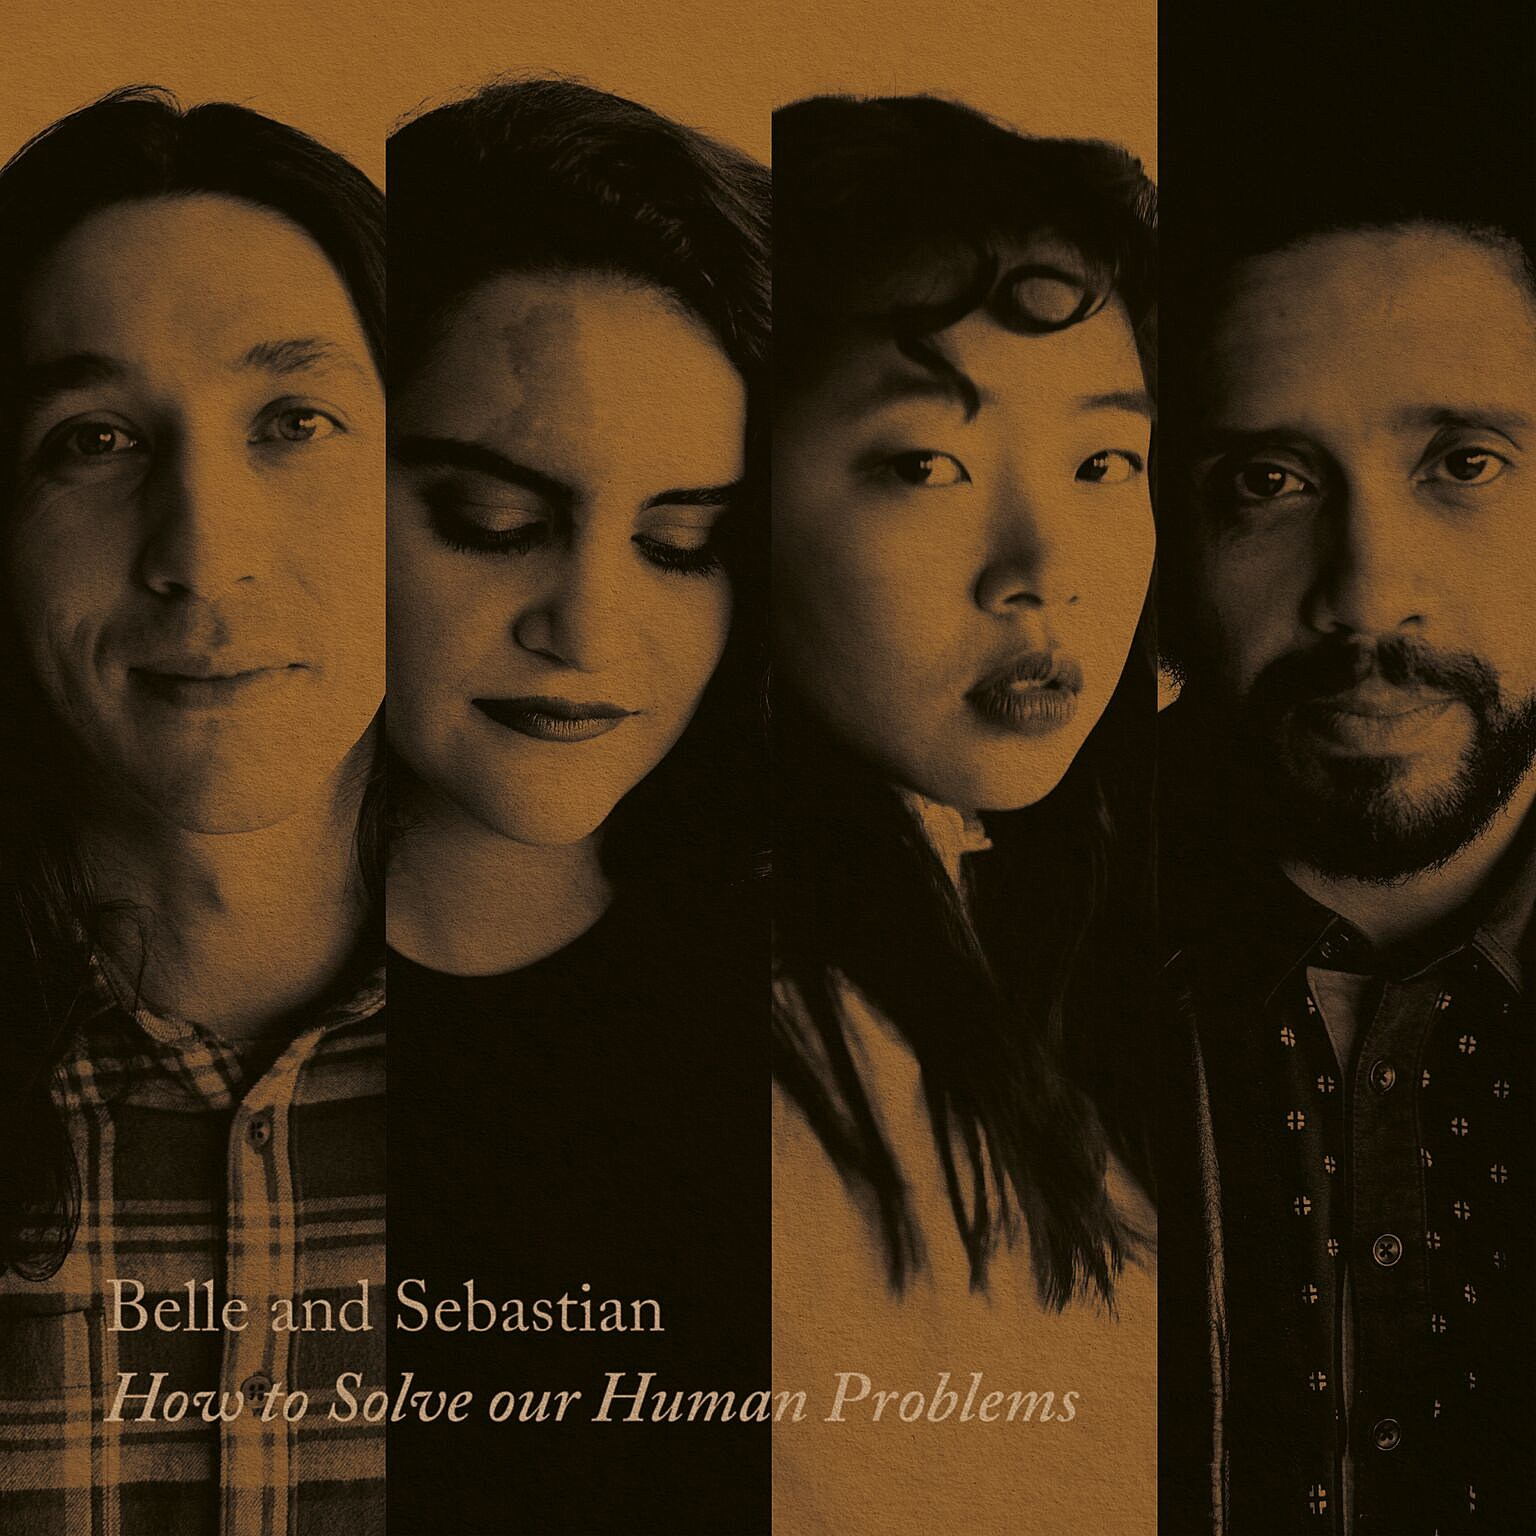 belle-and-sebastian-how-to-solve-our-human-problems